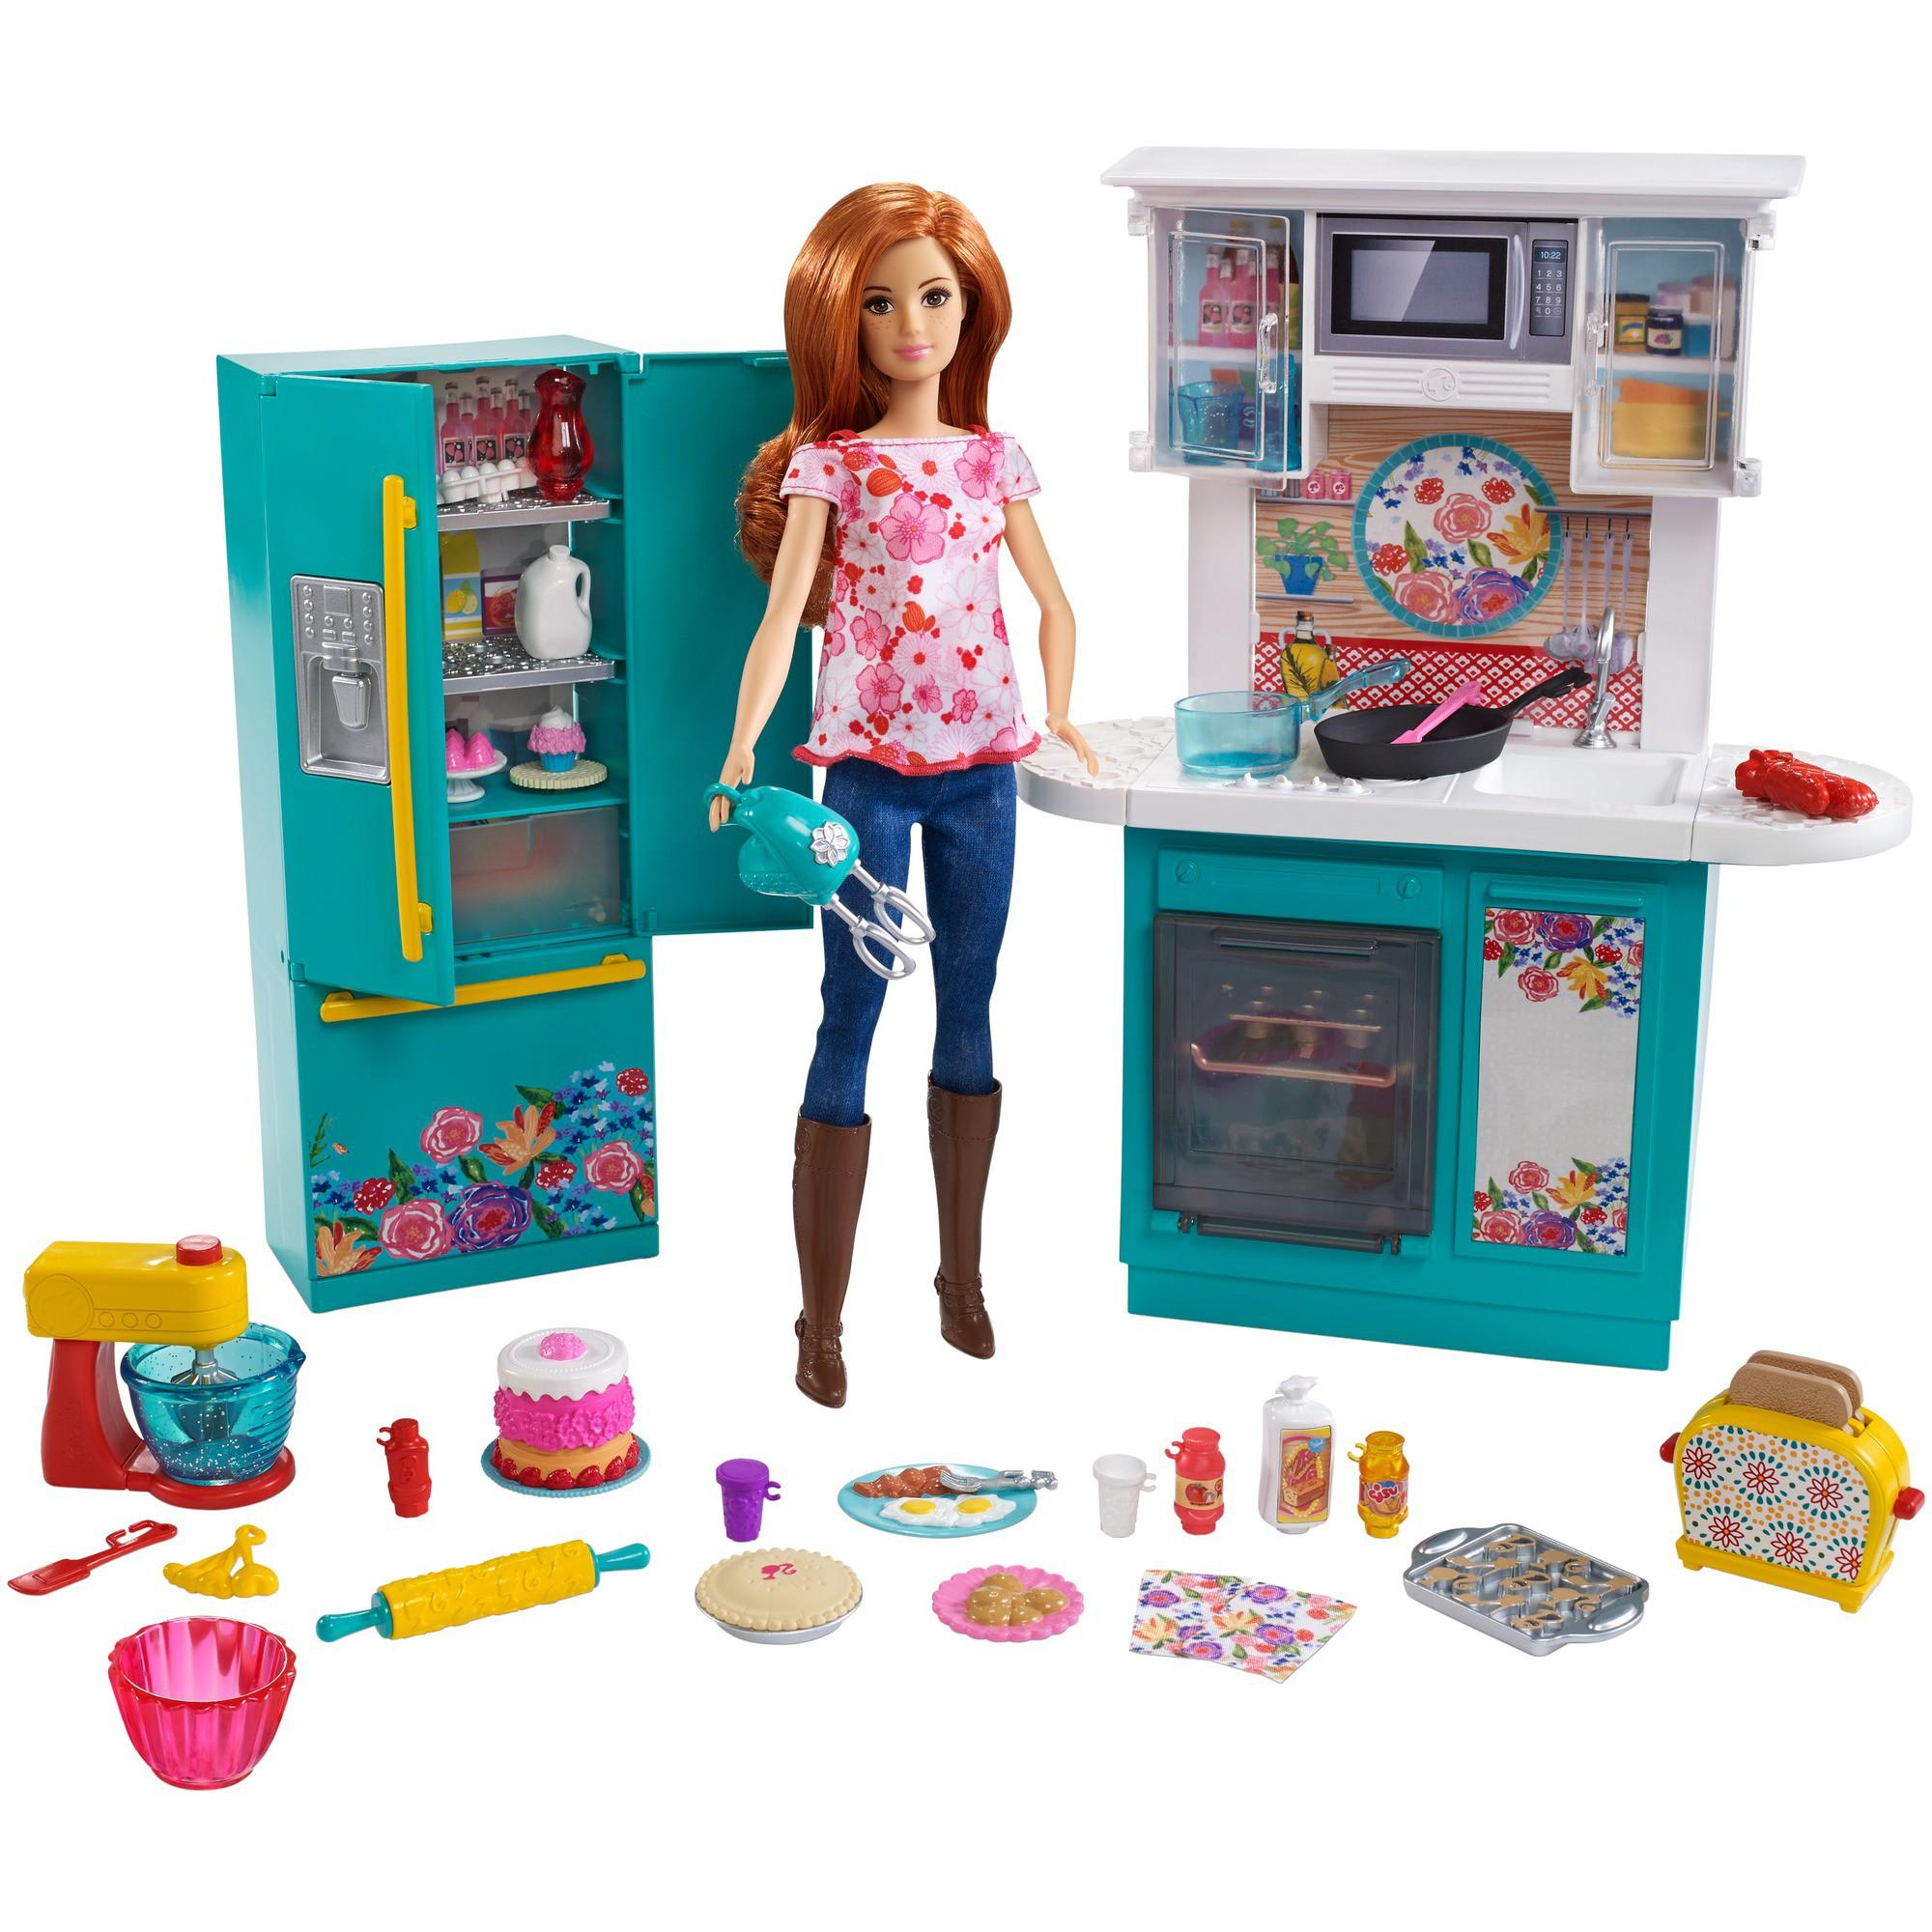 Ree Drummond Barbie kitchen set